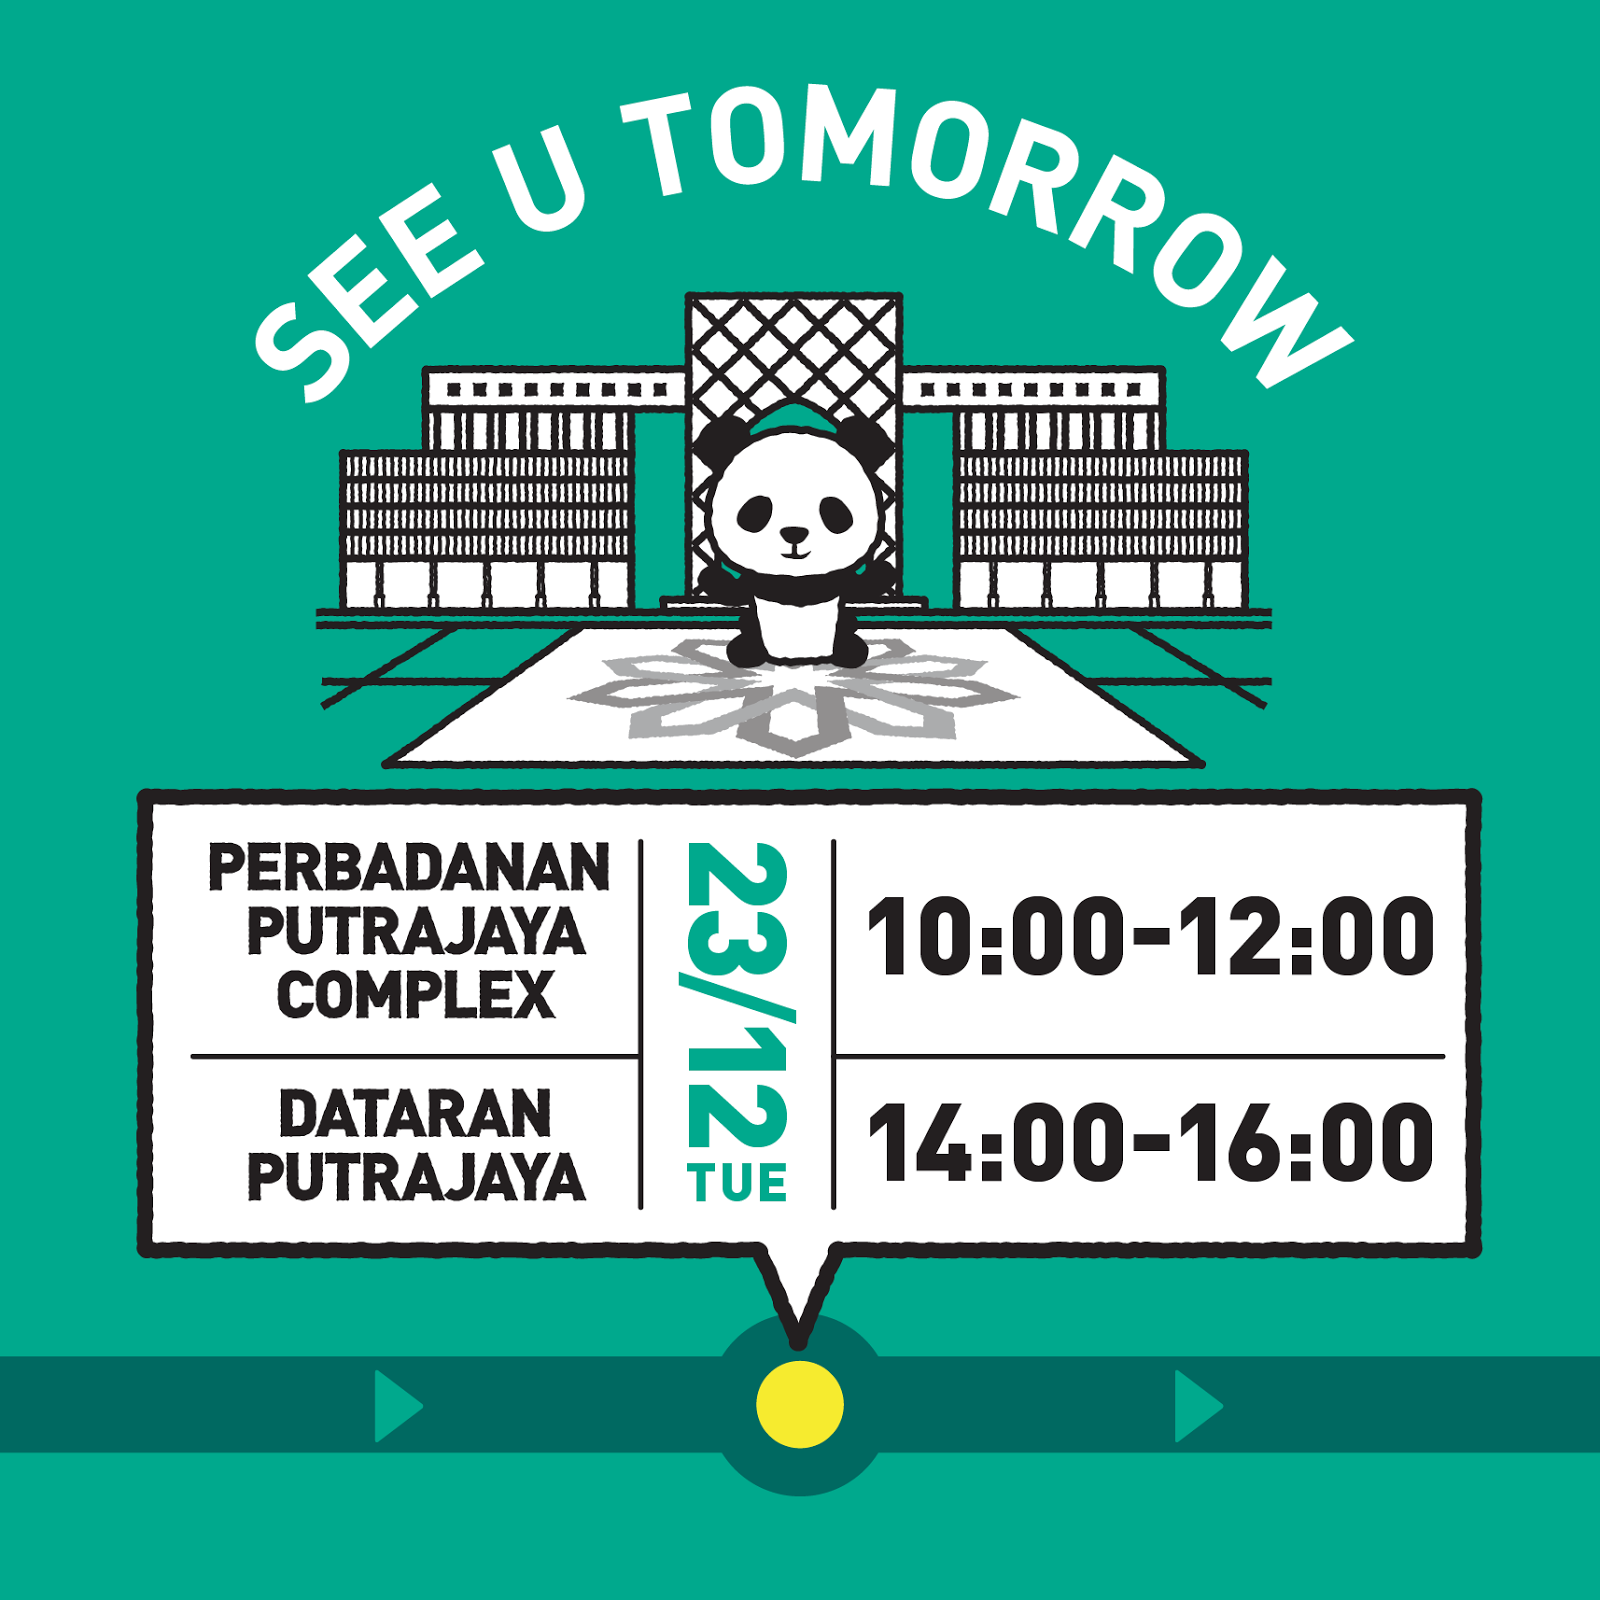 1600 Pandas will be at Perbadanan Putrajaya Complex and Dataran Putrajaya tomorrow (23 Dec) from 10am to 4pm